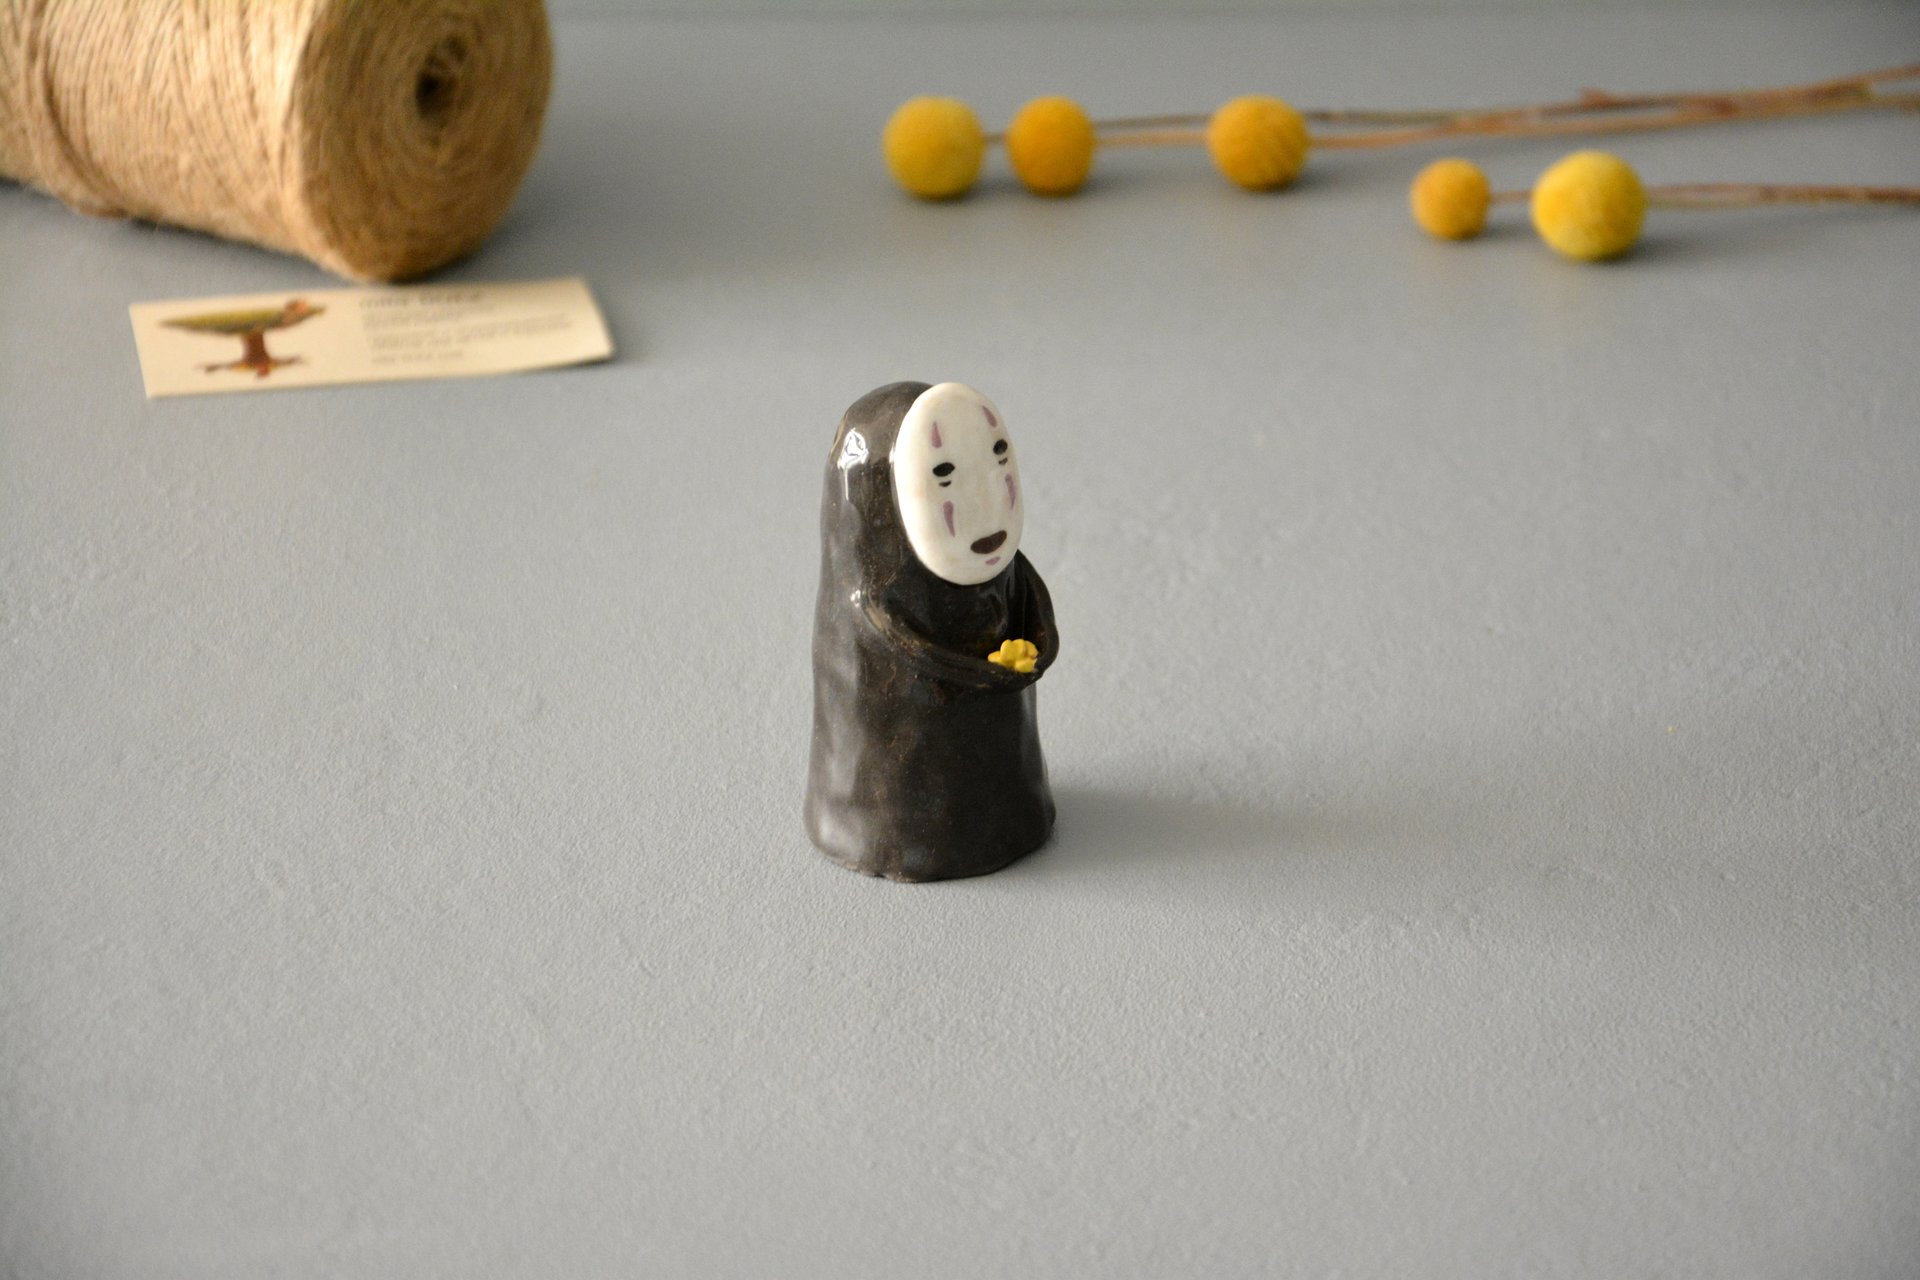 No-Face Kaonashi figurine, height - 8,5 cm, photo 2 of 5.